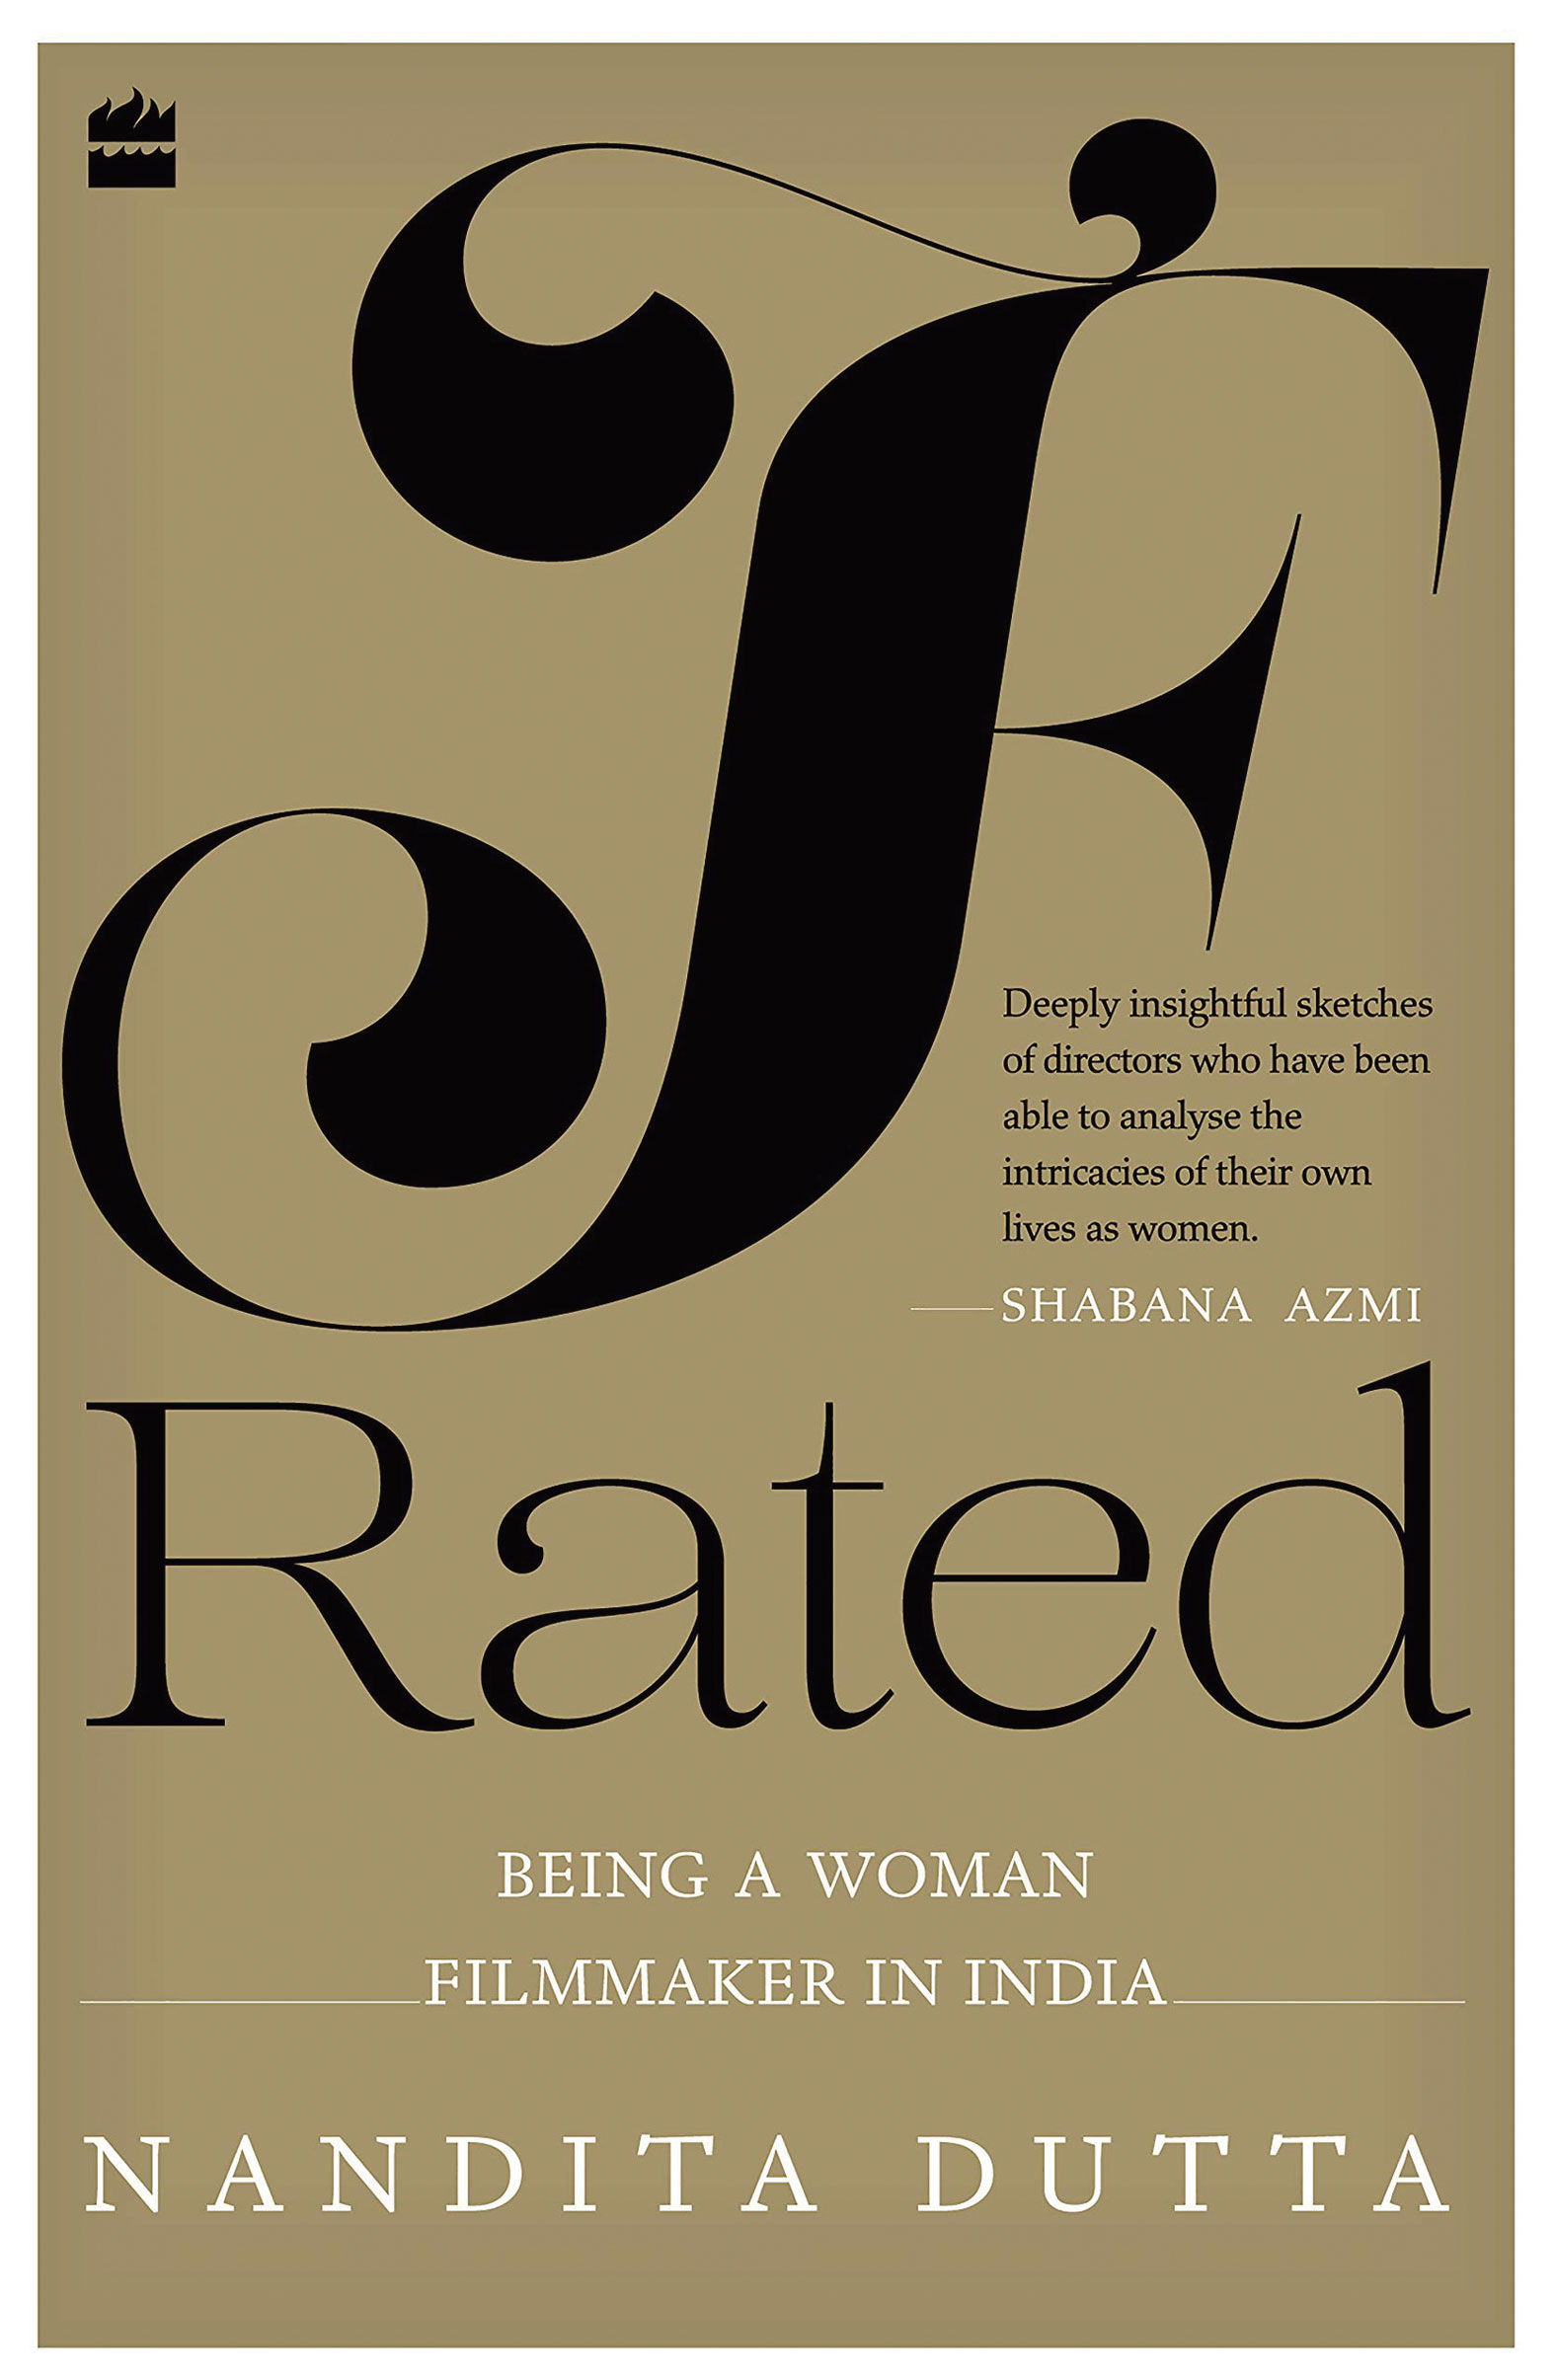 F-Rated: Being a Woman Filmmaker in India by Nandita Dutta; Harper Collins, 253 pages; Rs 499